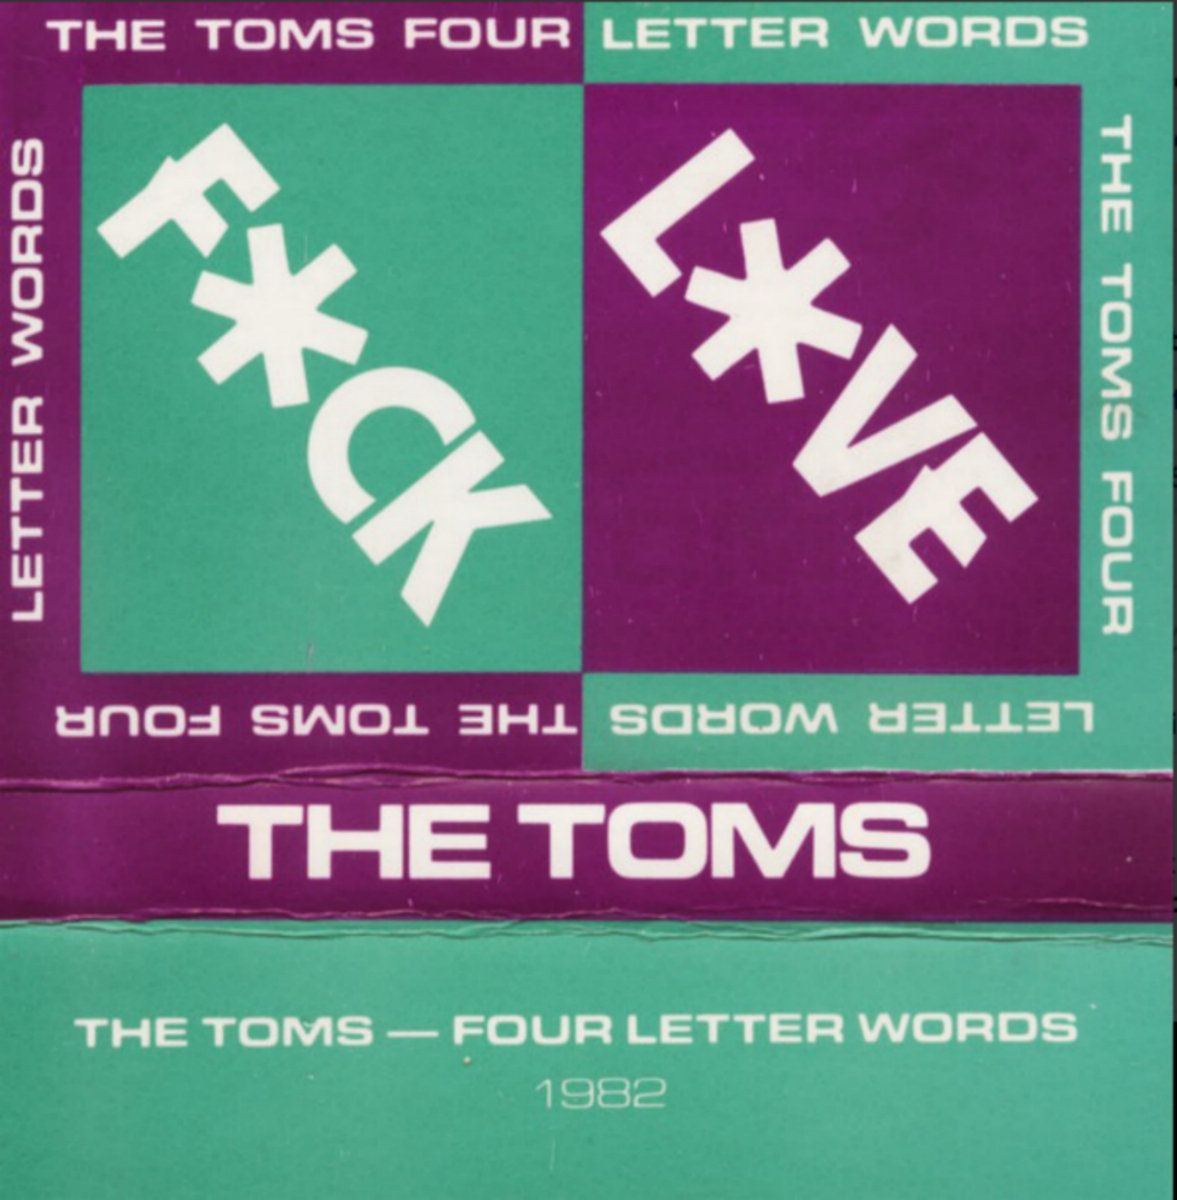 Four Letter O Words.Four Letter Words The Toms